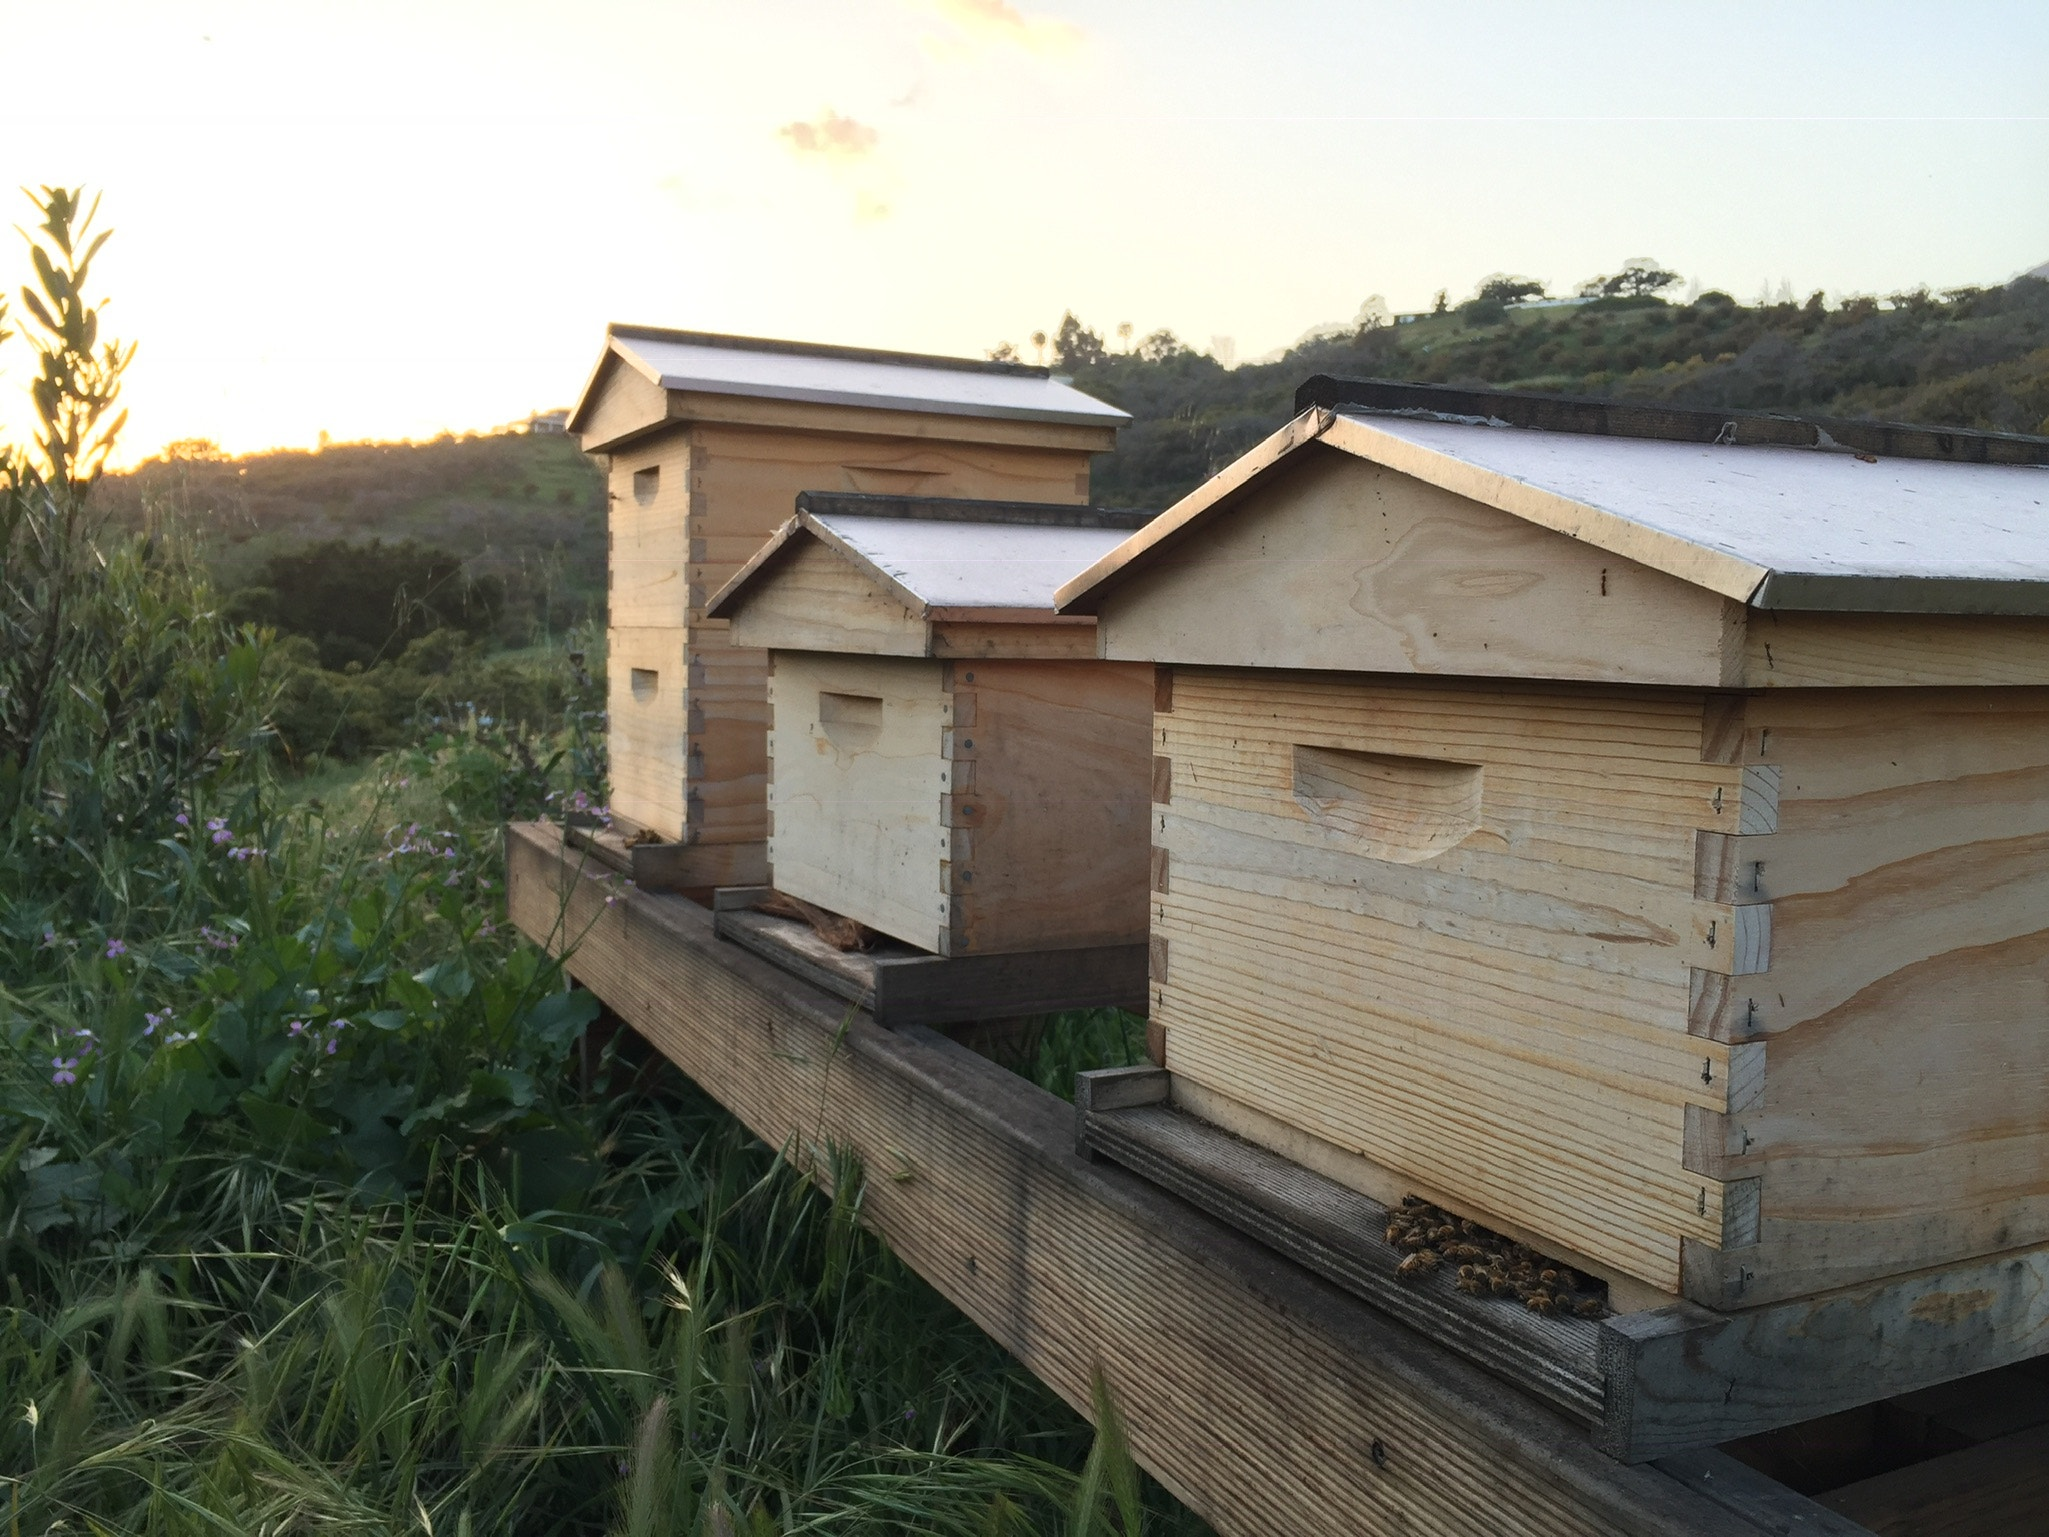 Wooden boxed apiary